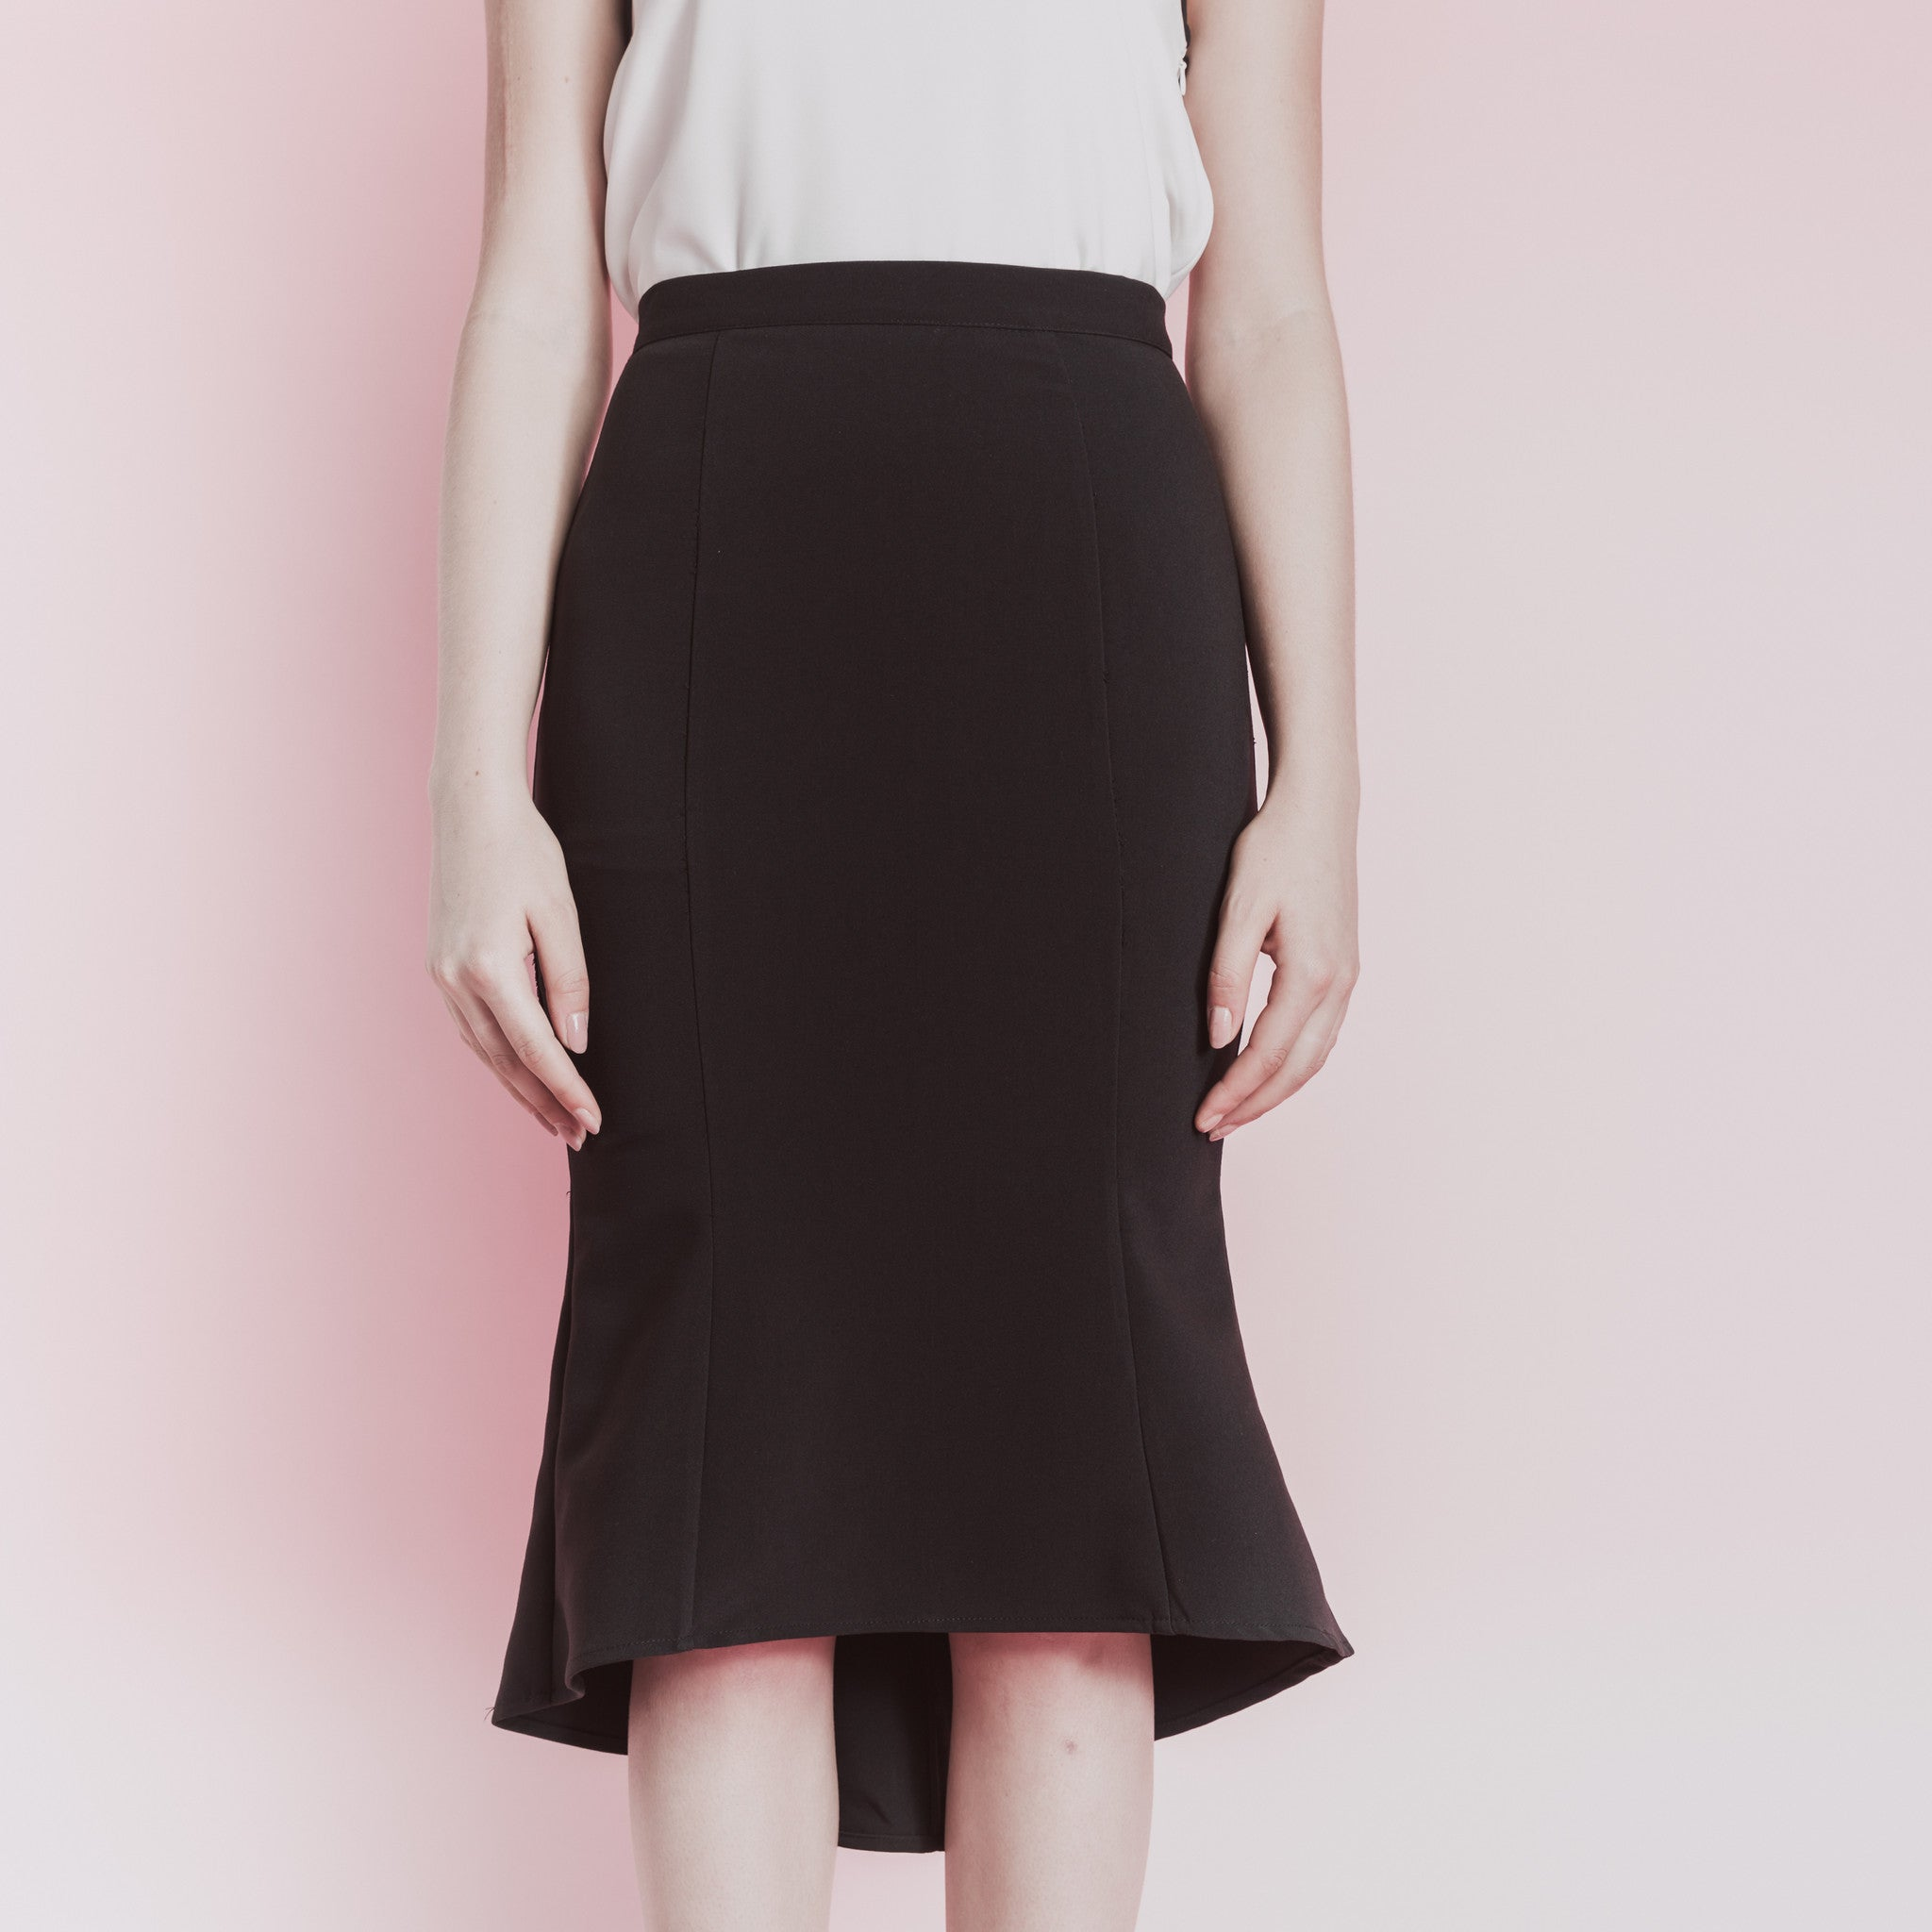 ASYMMETRICAL MERMAID MIDI SKIRT